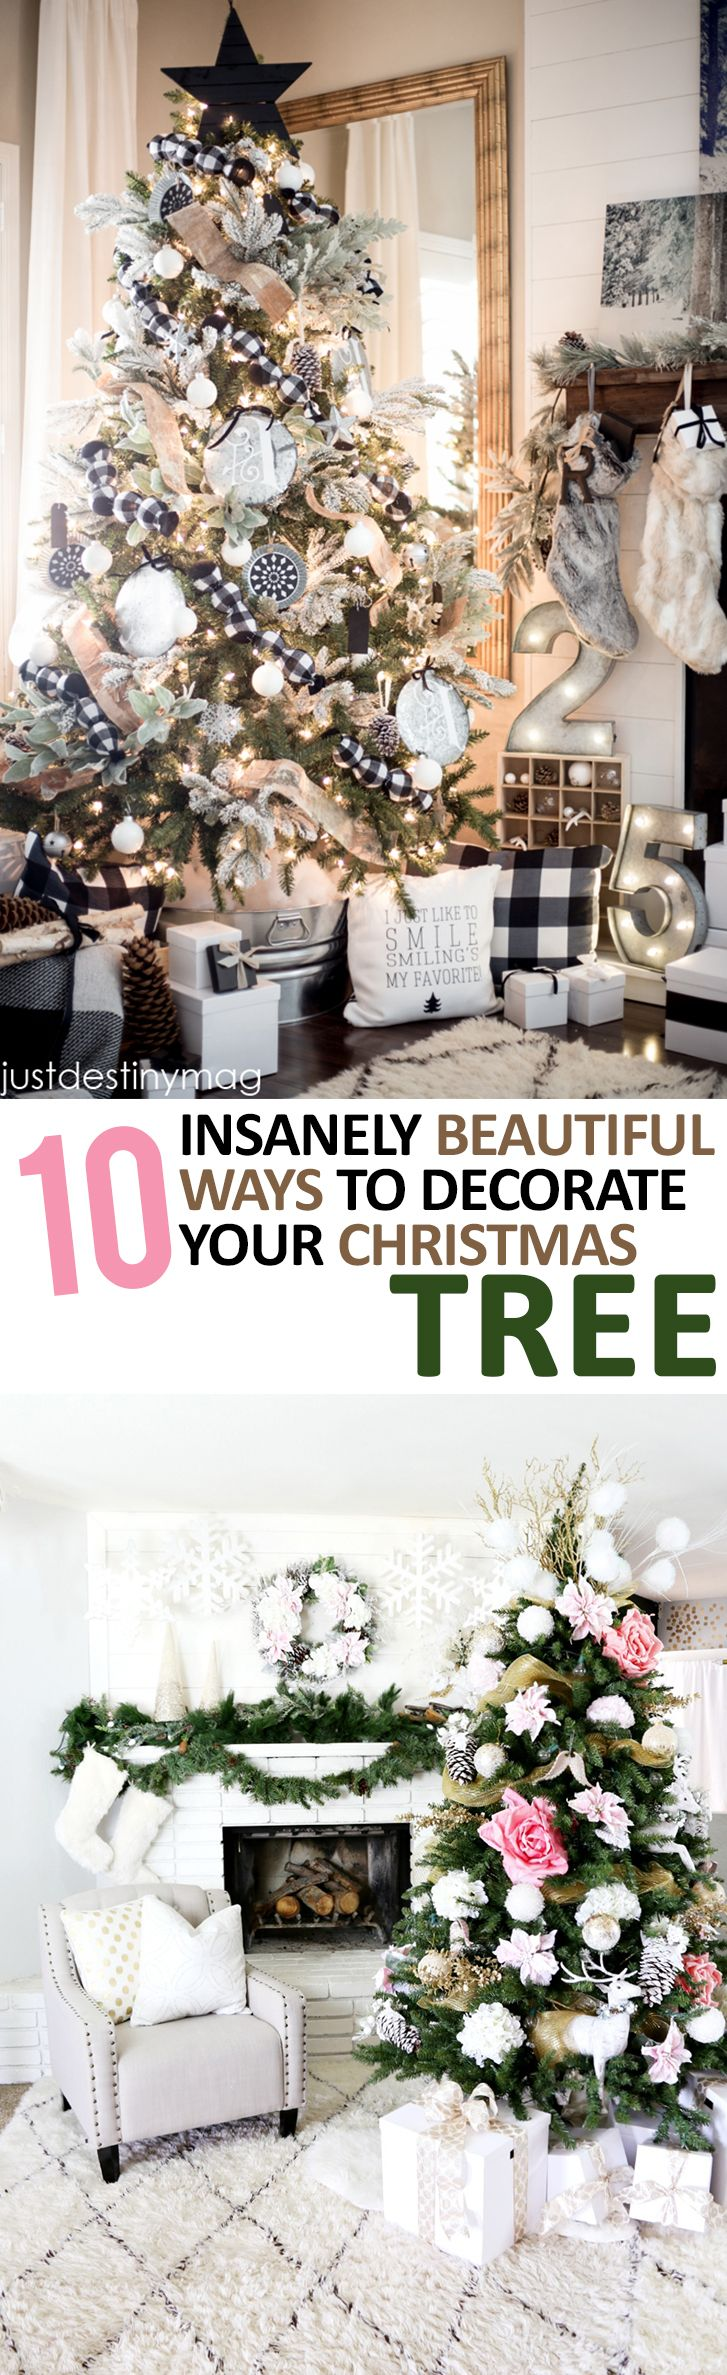 Tree Decorating Ideas Best 25 Christmas Tree Decorations Ideas On Pinterest  Christmas